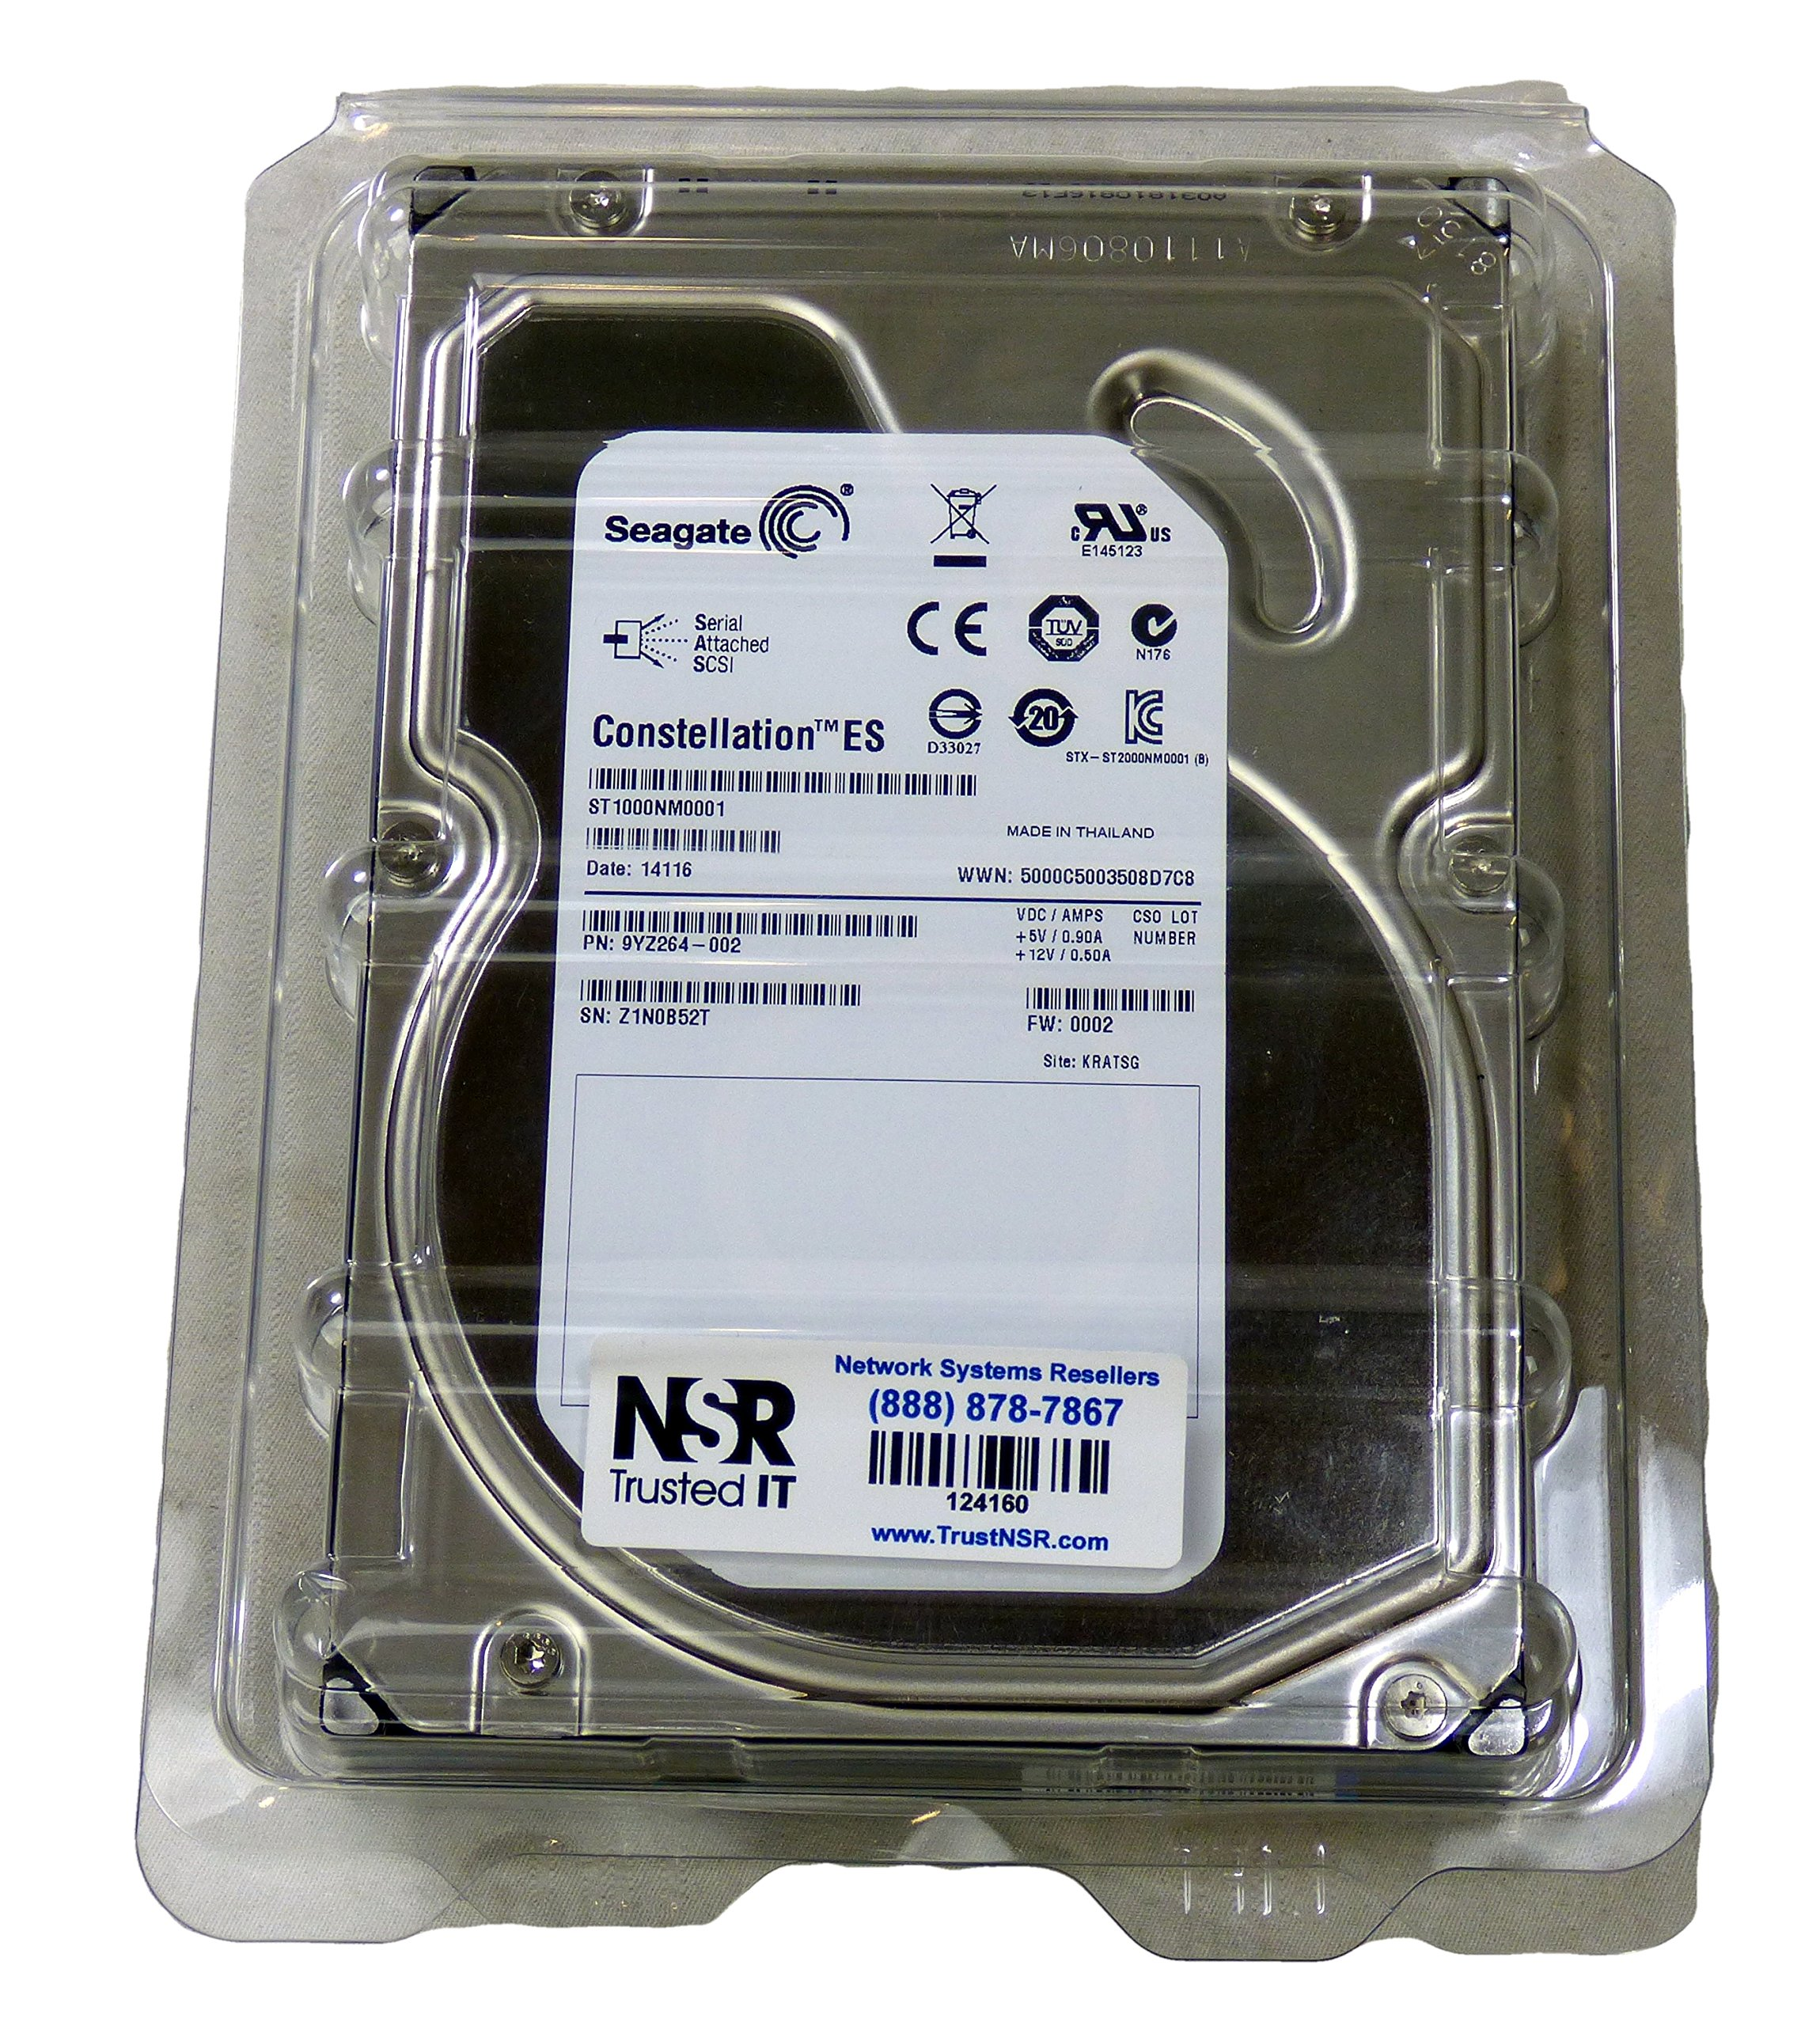 Seagate Constellation ES 1 TB 7200RPM 6 Gb/s SAS 64MB Cache 3.5 Inch Internal Bare Drive (ST1000NM0001) by SEBA9 (Image #1)